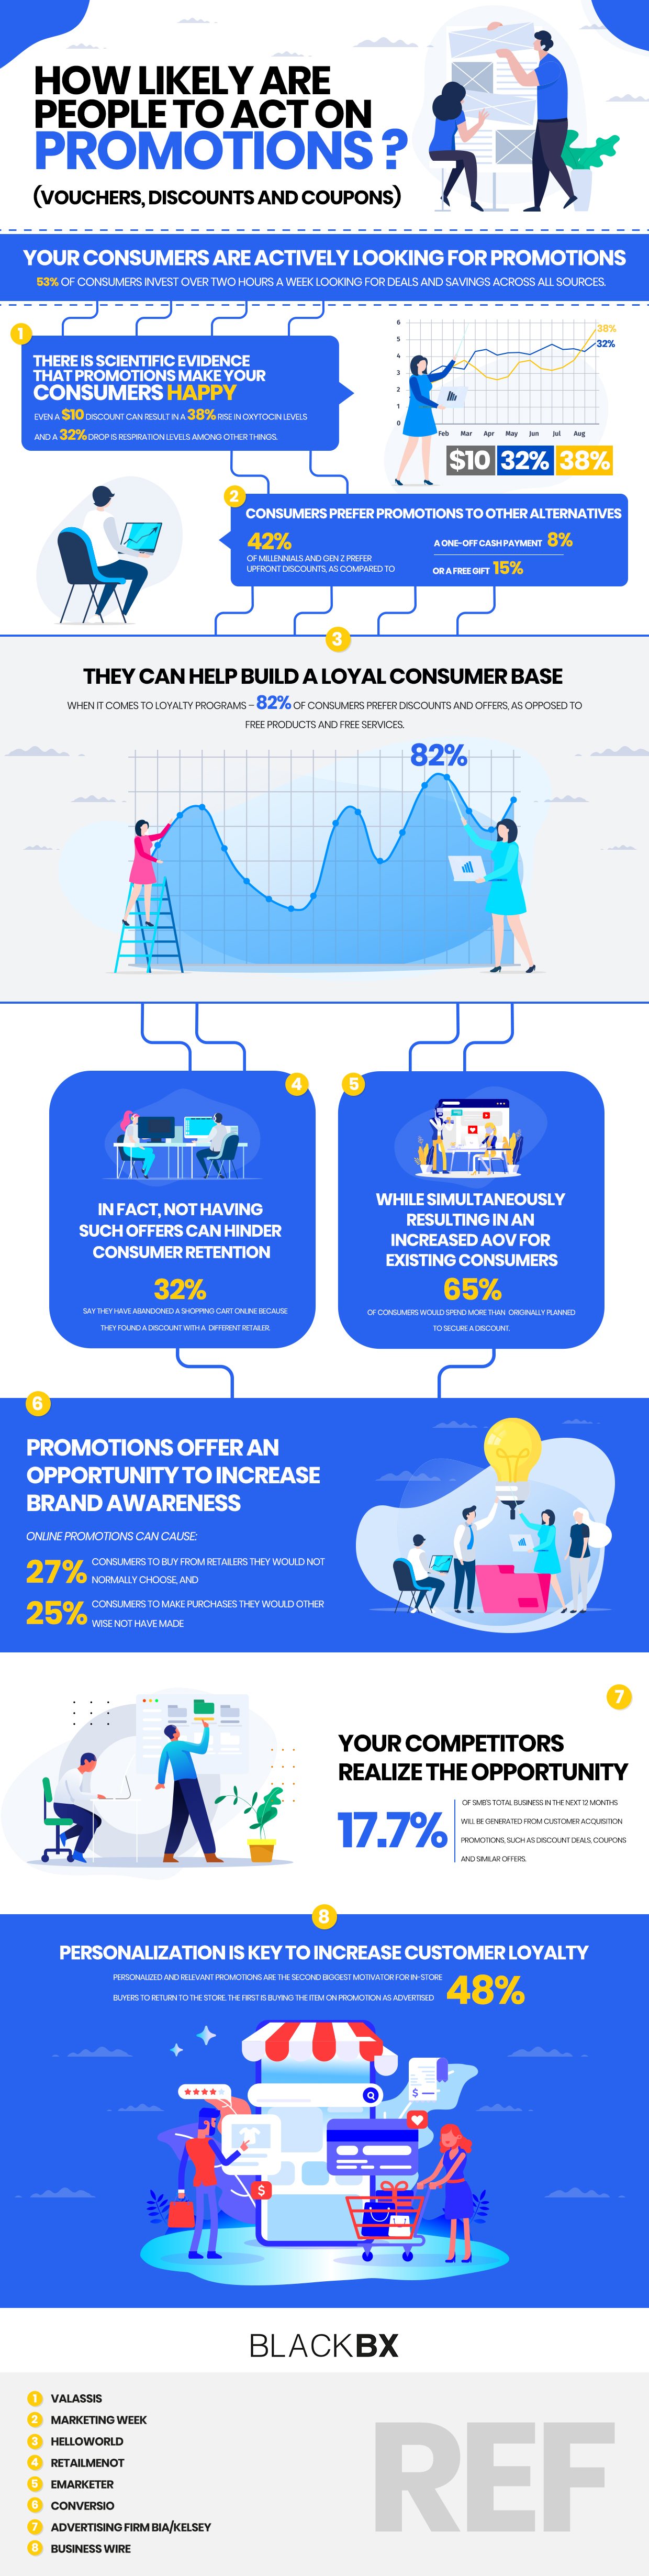 How likely are people to act on promotions. This infographics has several recent statistics on the use of vouchers, discounts and coupons.